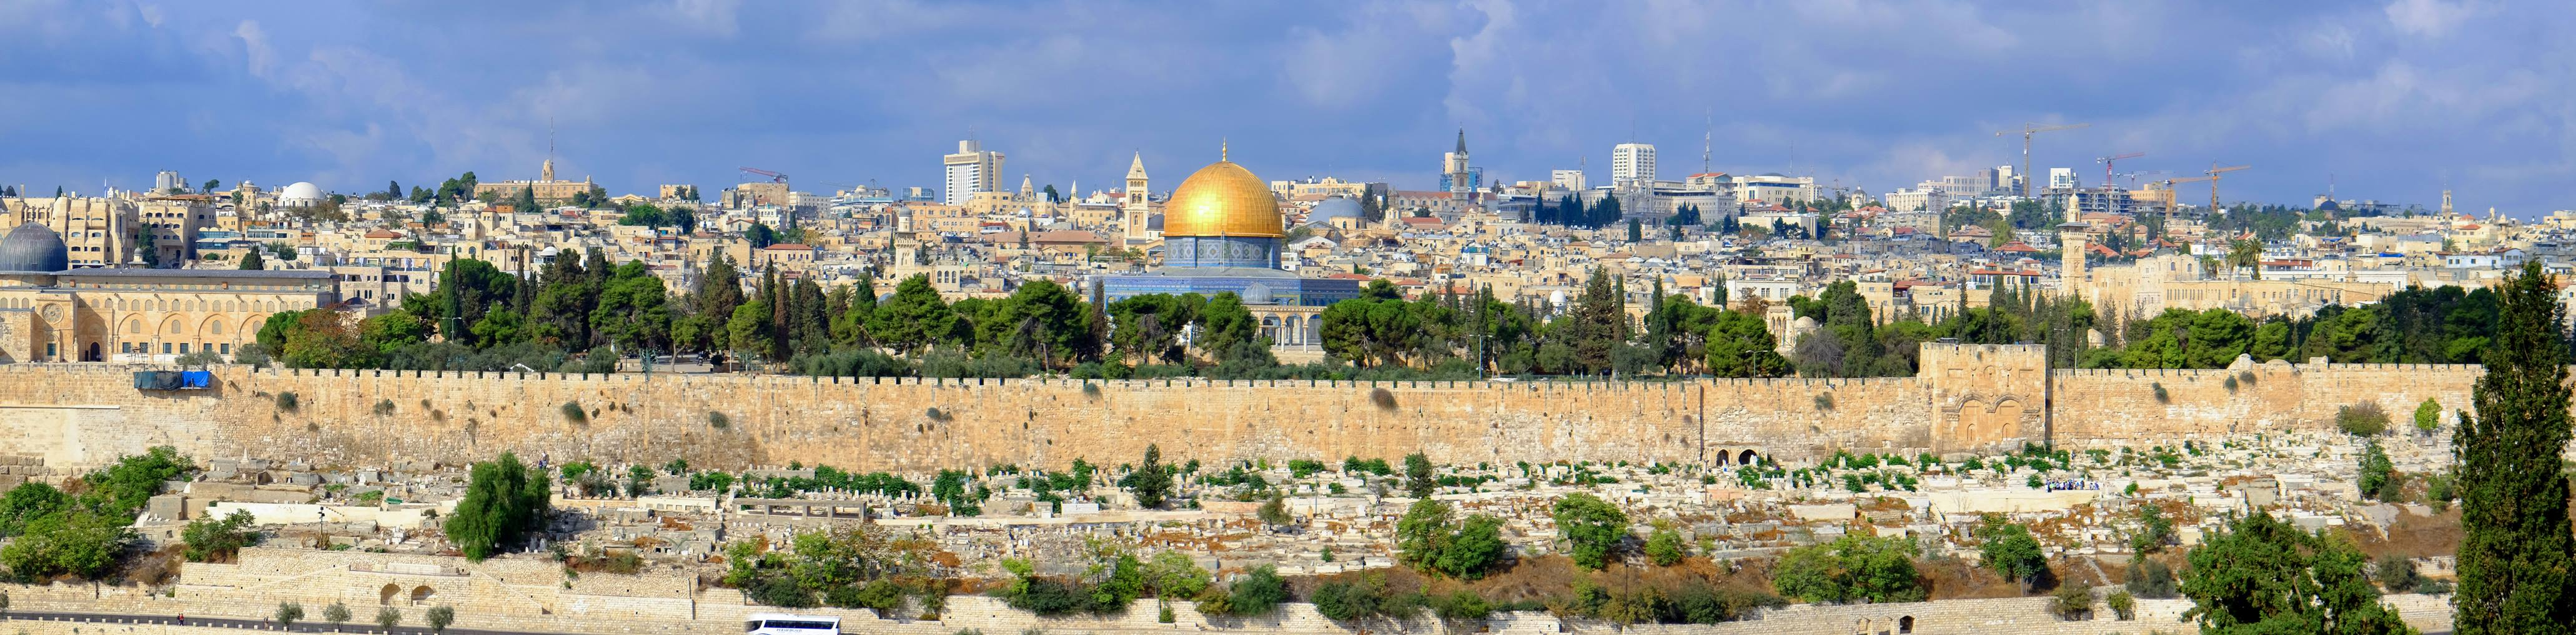 Holy Land tours celebrate 40 years of ministry for Bethlehem Bible College